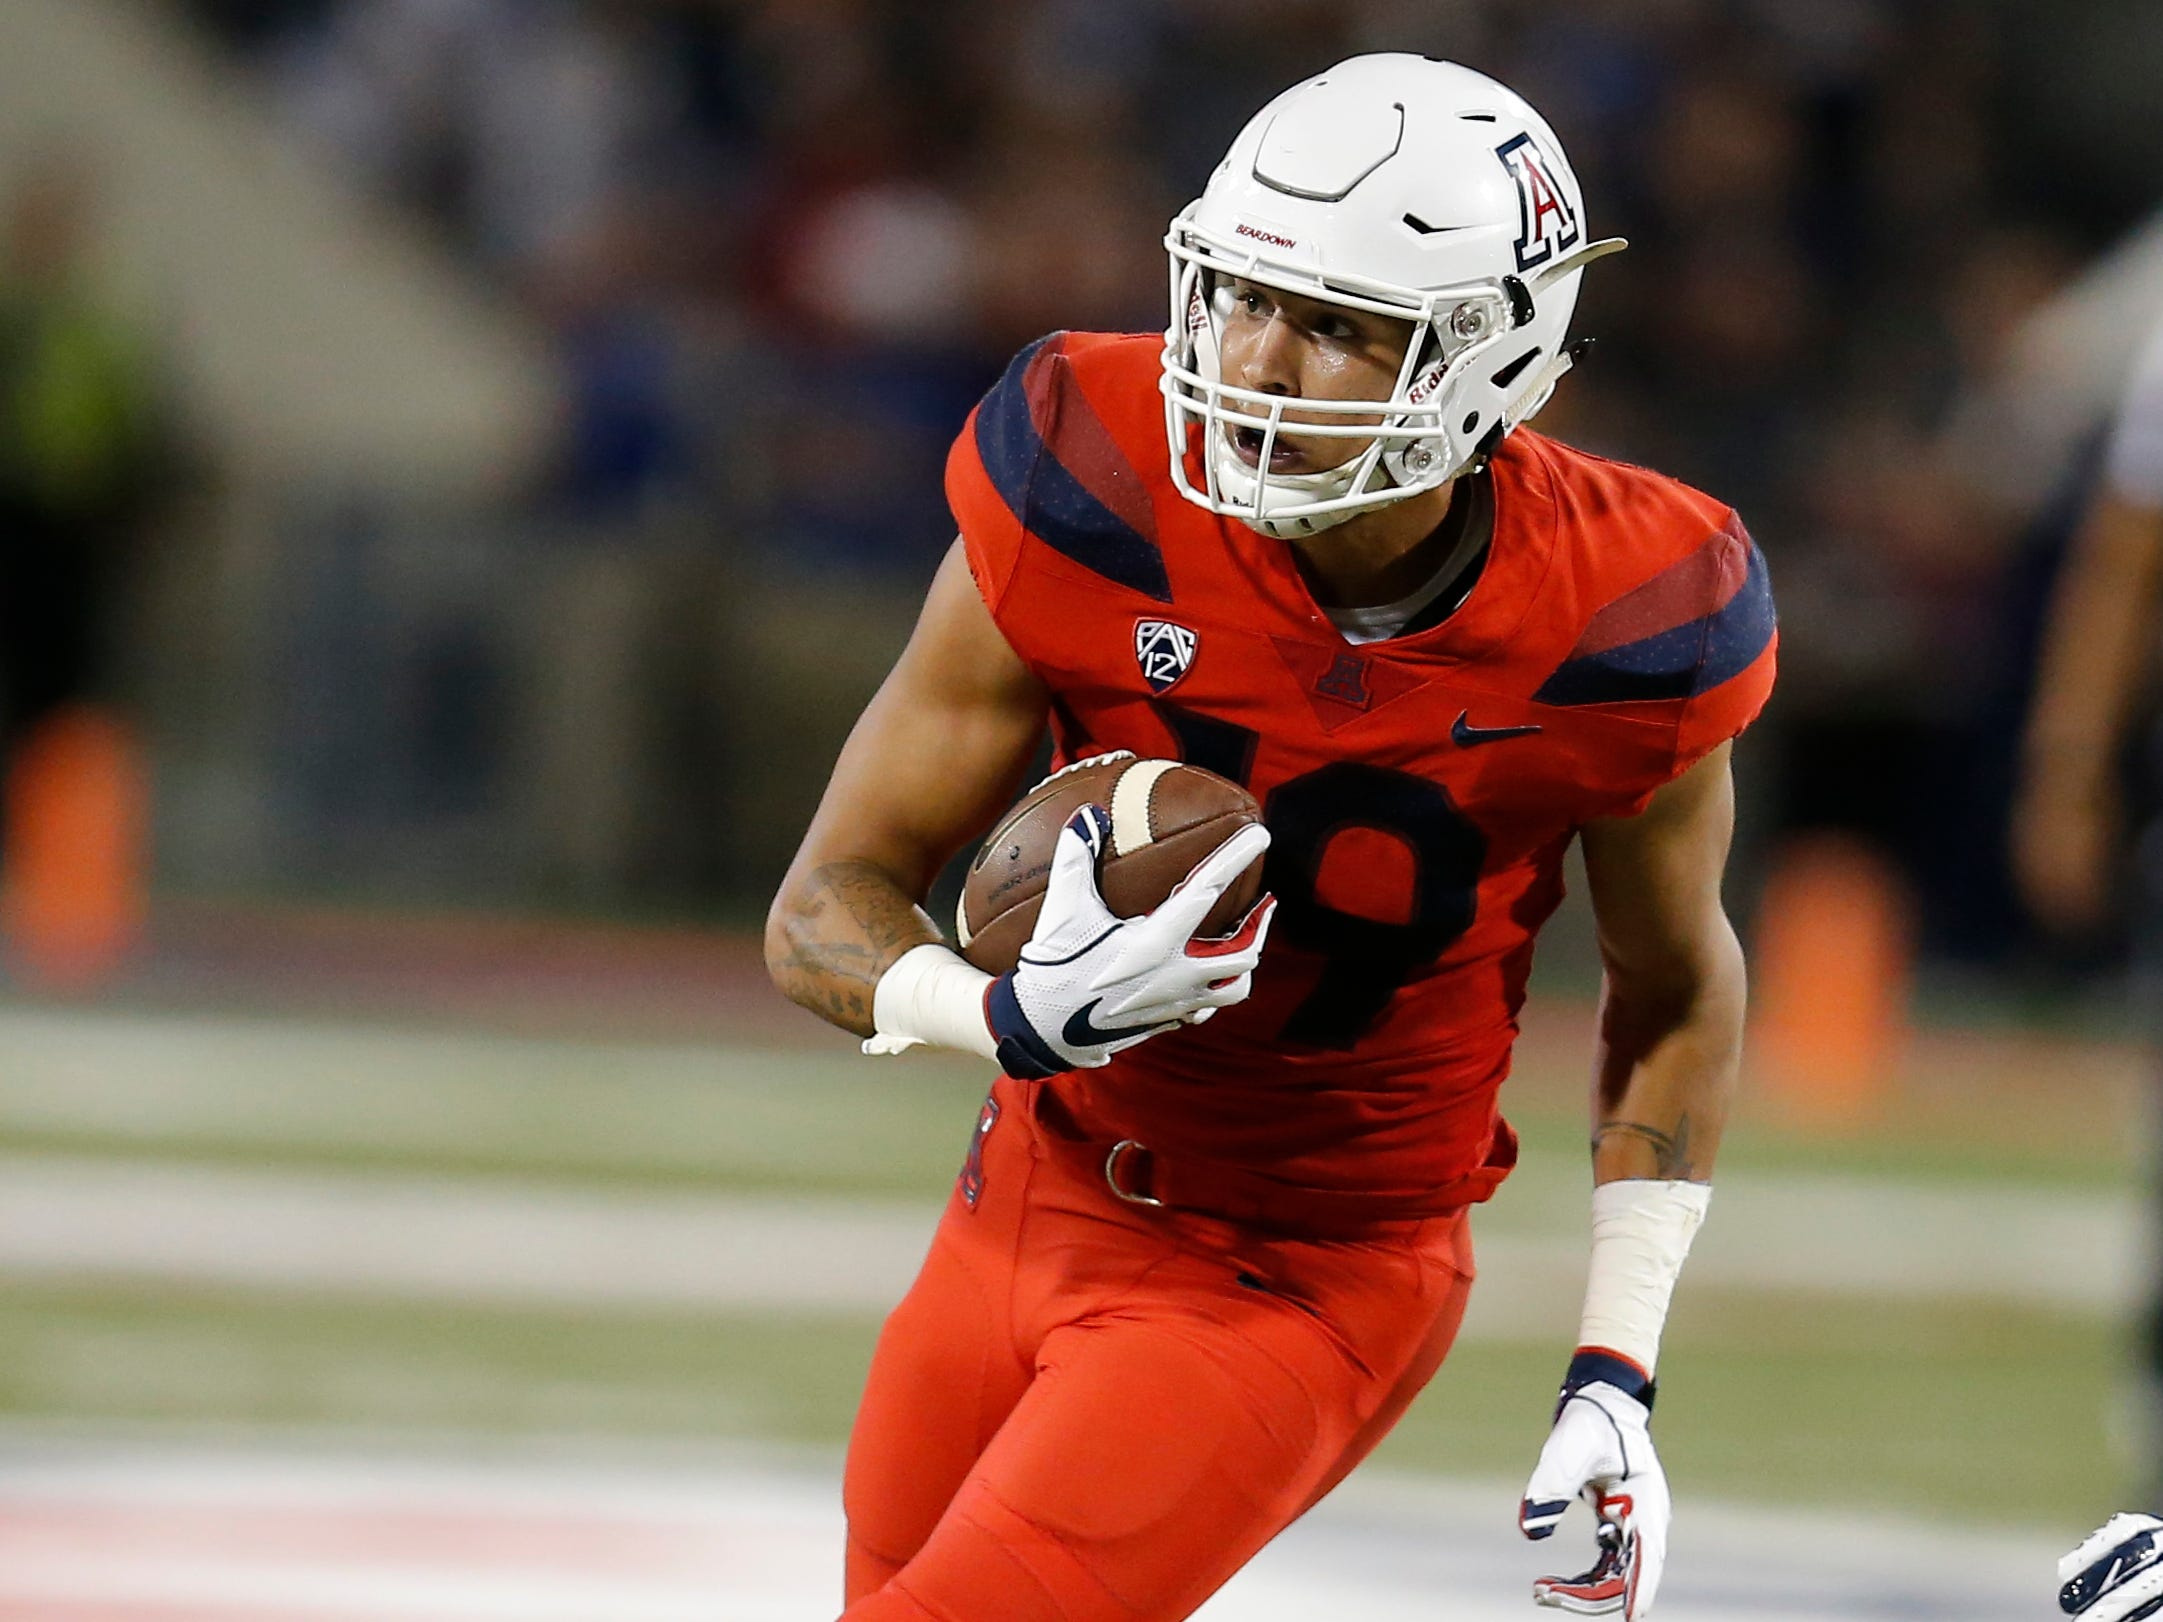 Arizona wide receiver Shawn Poindexter (19) in the first half during an NCAA college football game against Brigham Young, Saturday, Sept. 1, 2018, in Tucson, Ariz.